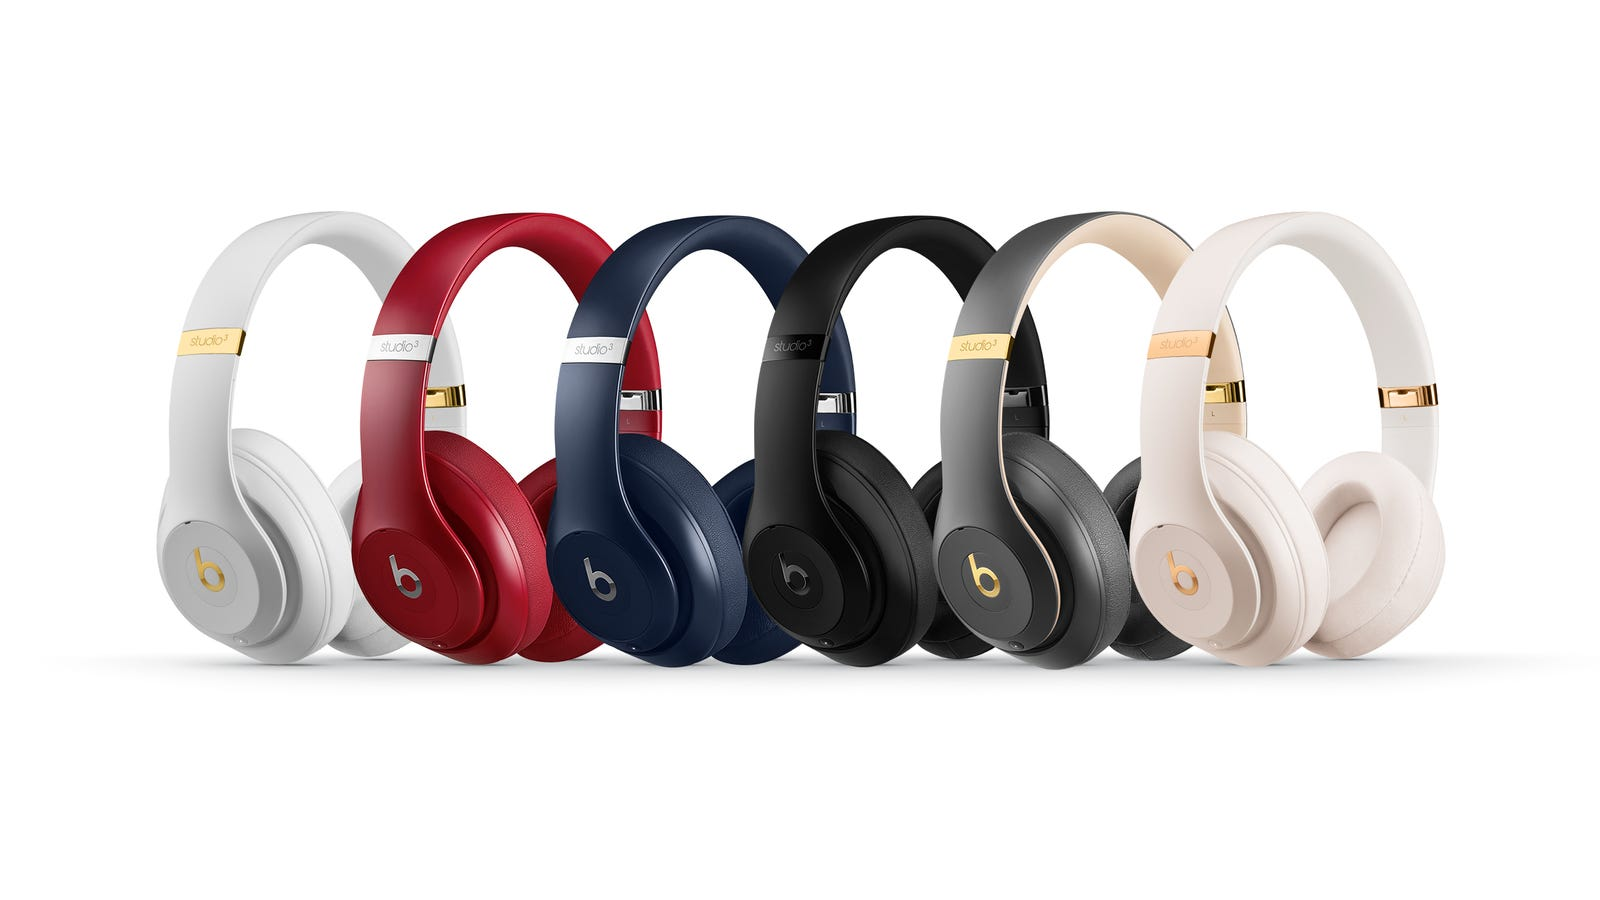 blue earbuds beats - Dr. Dre and Jimmy Iovine Ordered to Pay $25 Million to Former Beats Partner